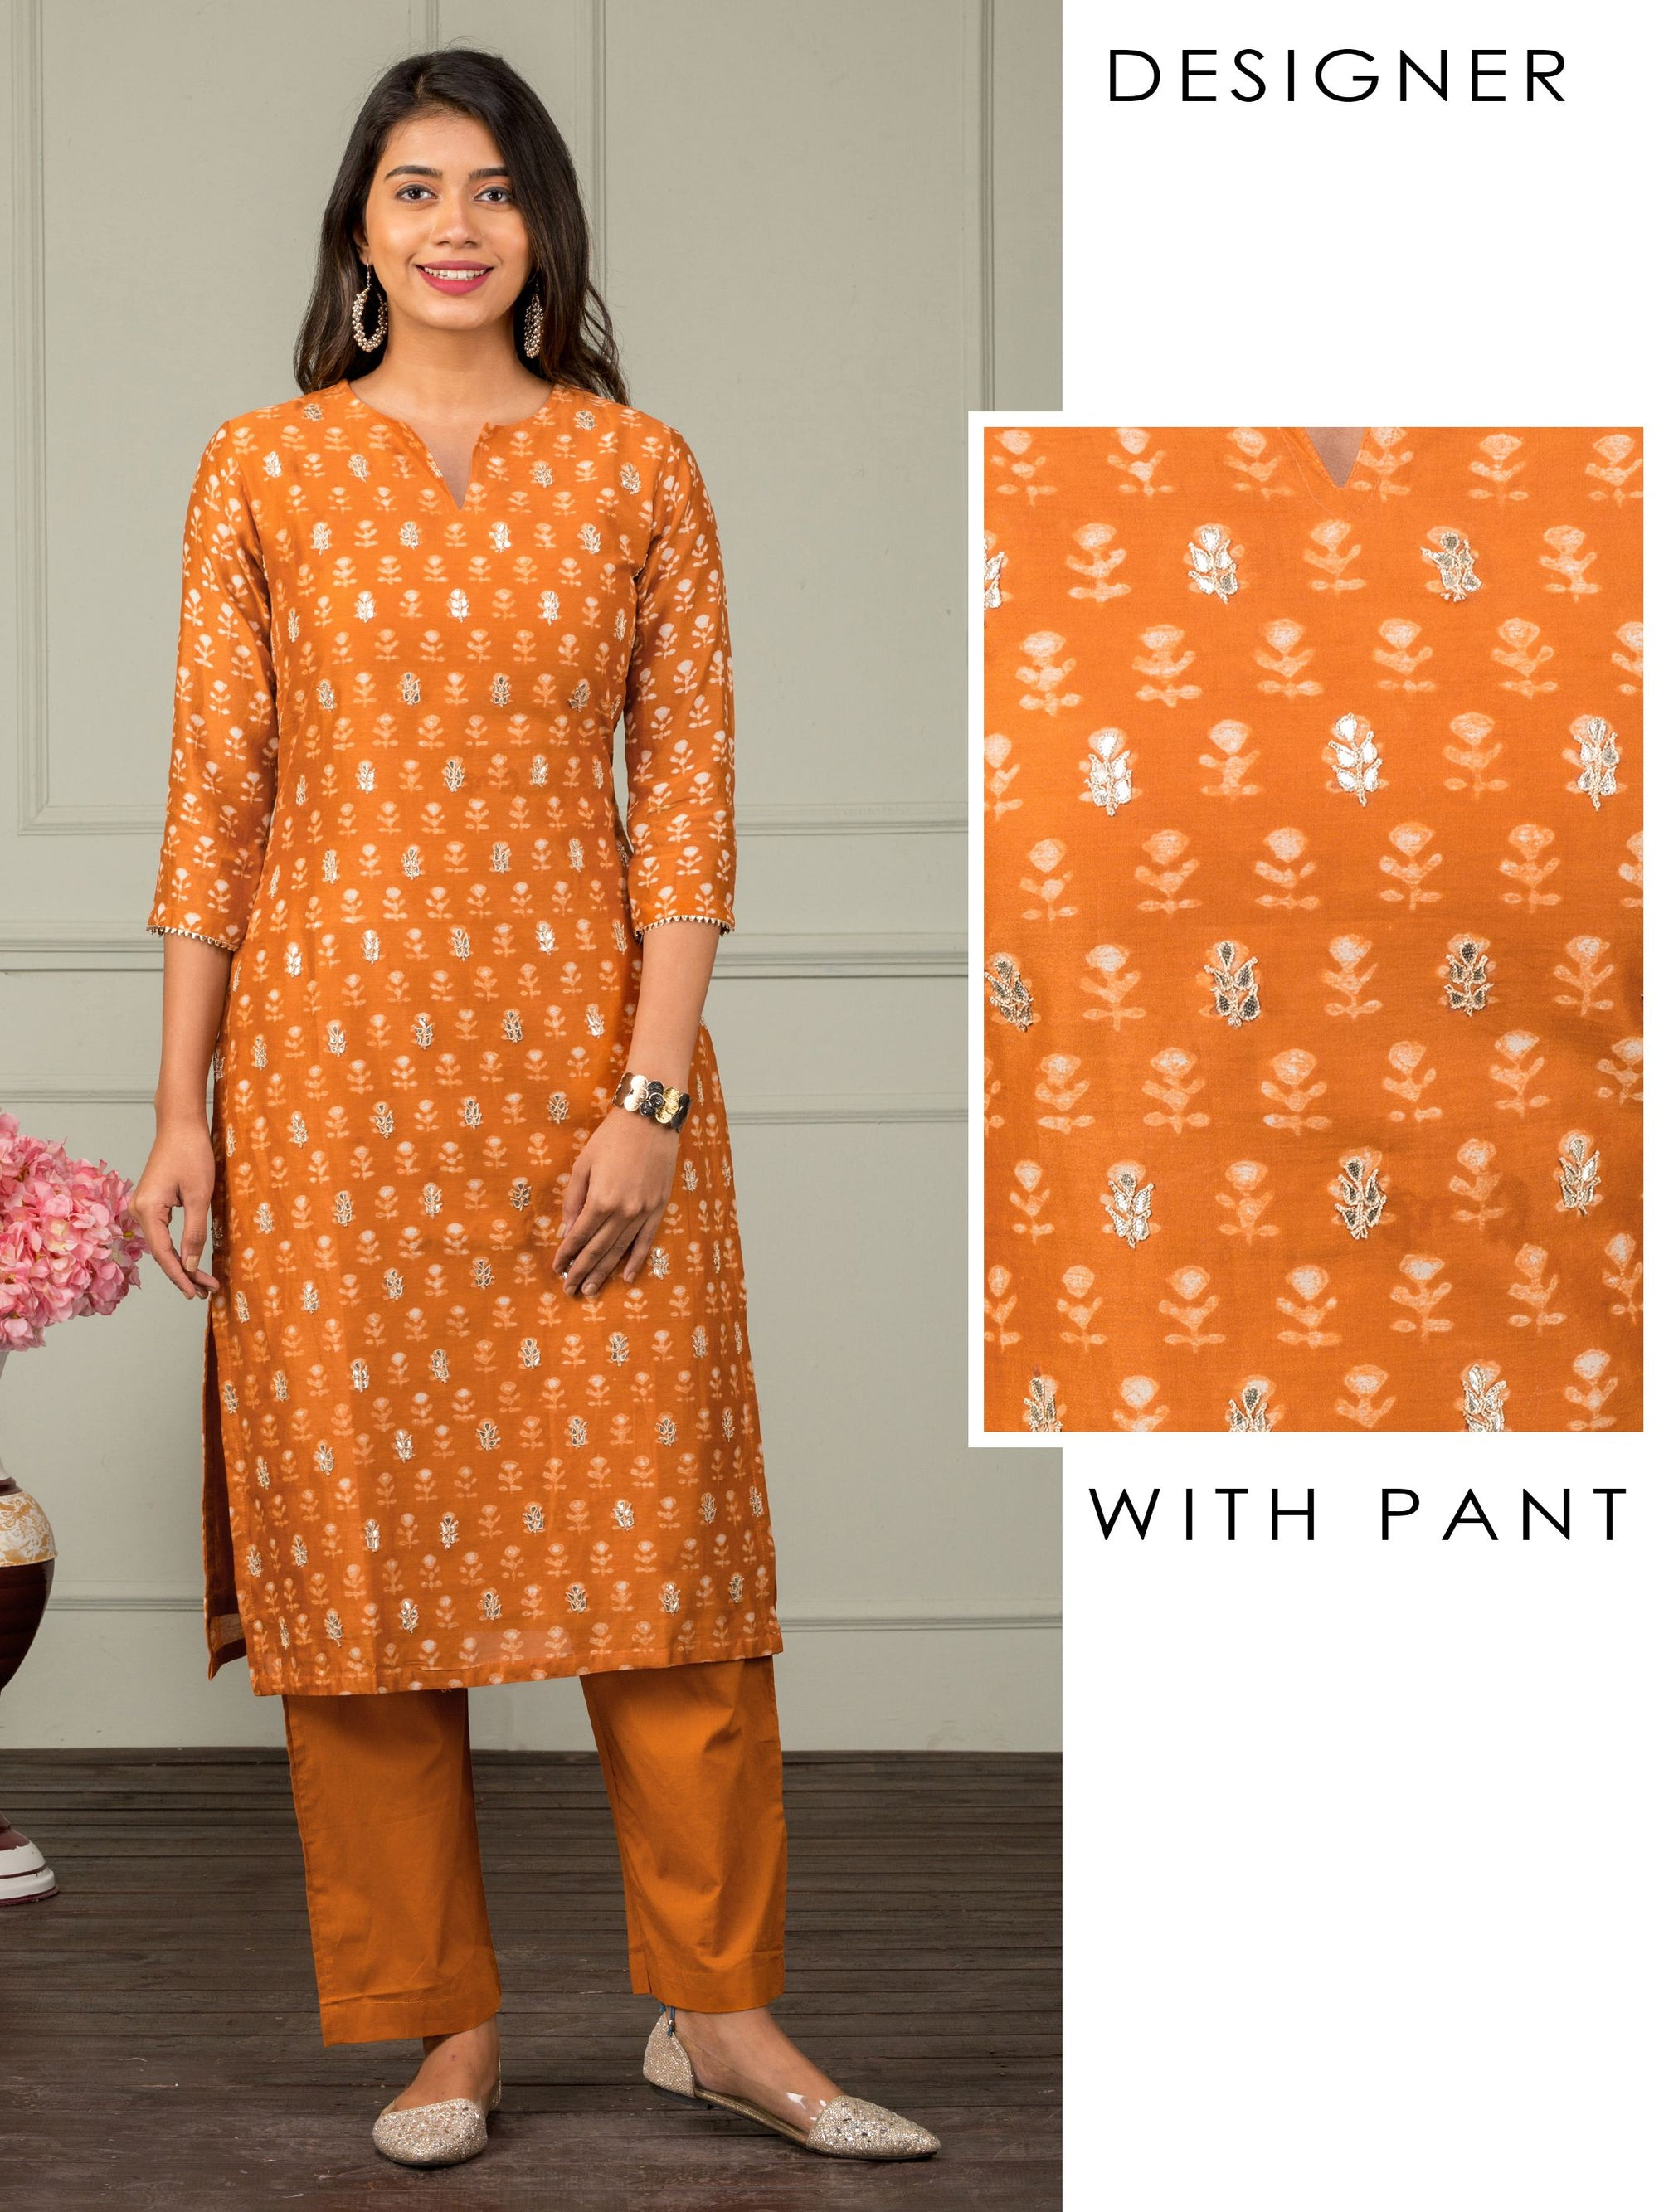 Monotone Hand Block Floral Printed Gota Kurti & Pant Set - Rust Orange